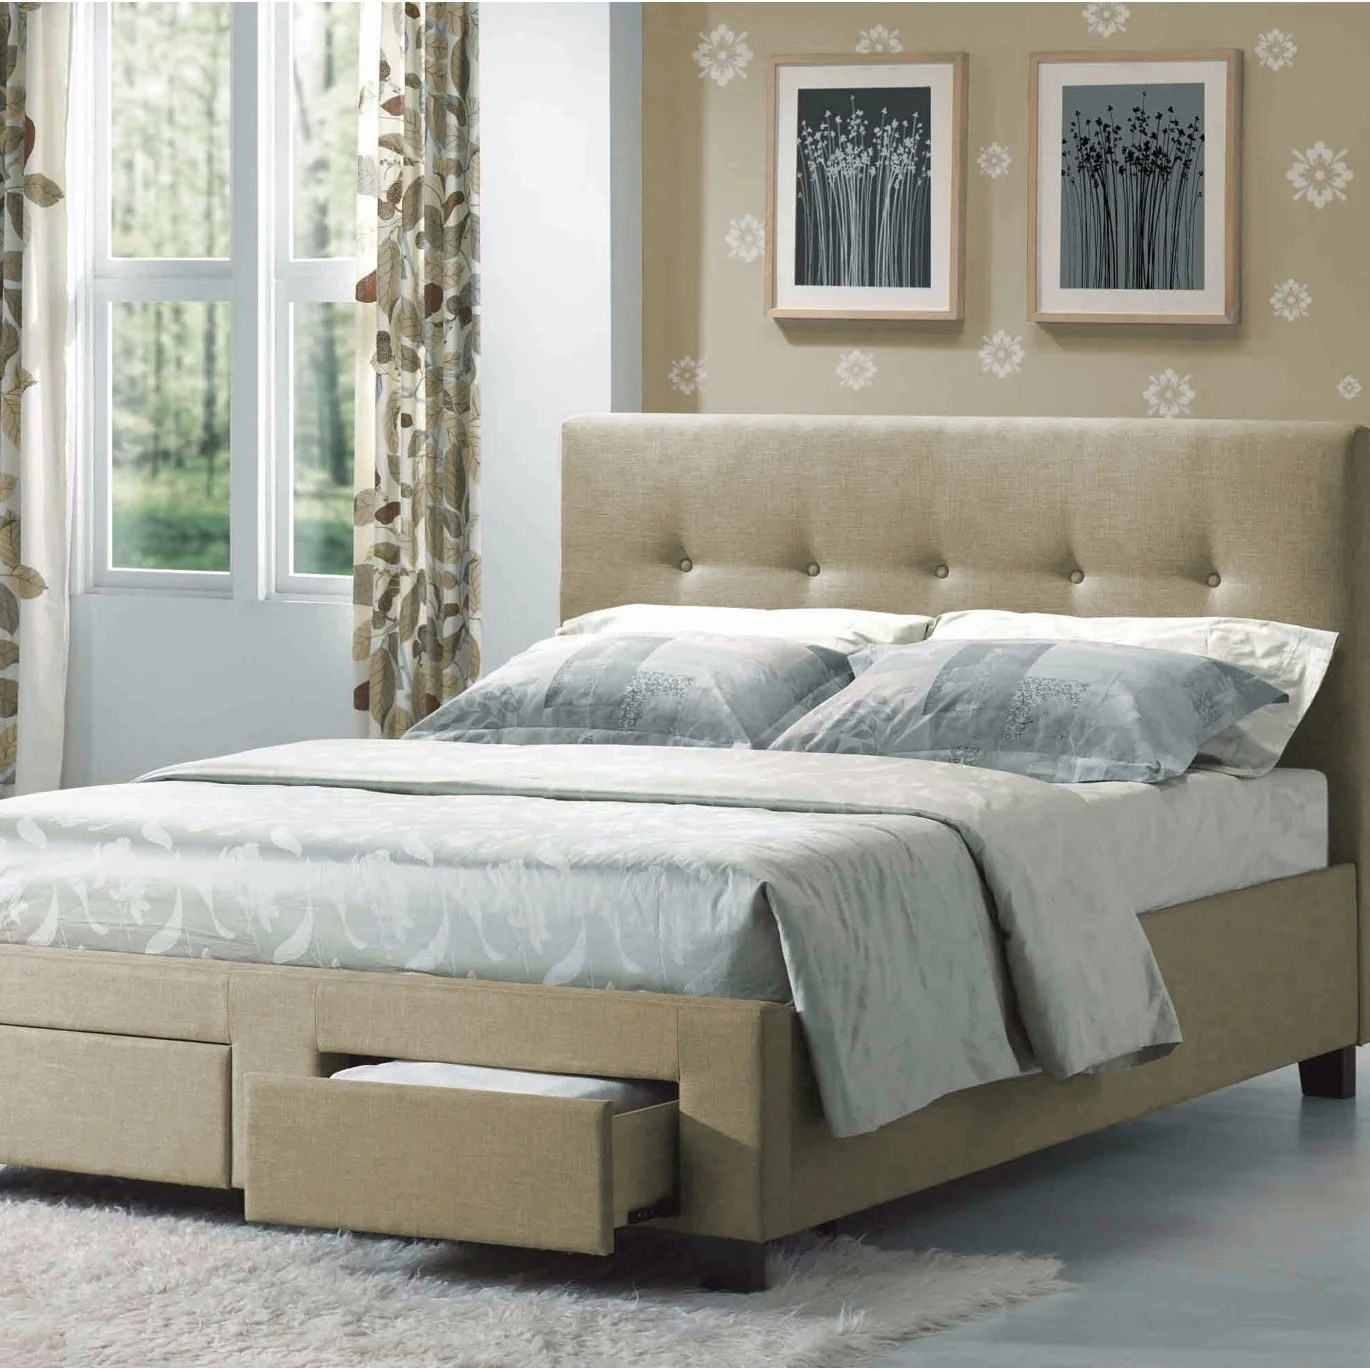 Tanning Beds Sydney Sydney Beige Twin Upholstered Bed With Tufted Headboard And Hidden Storage